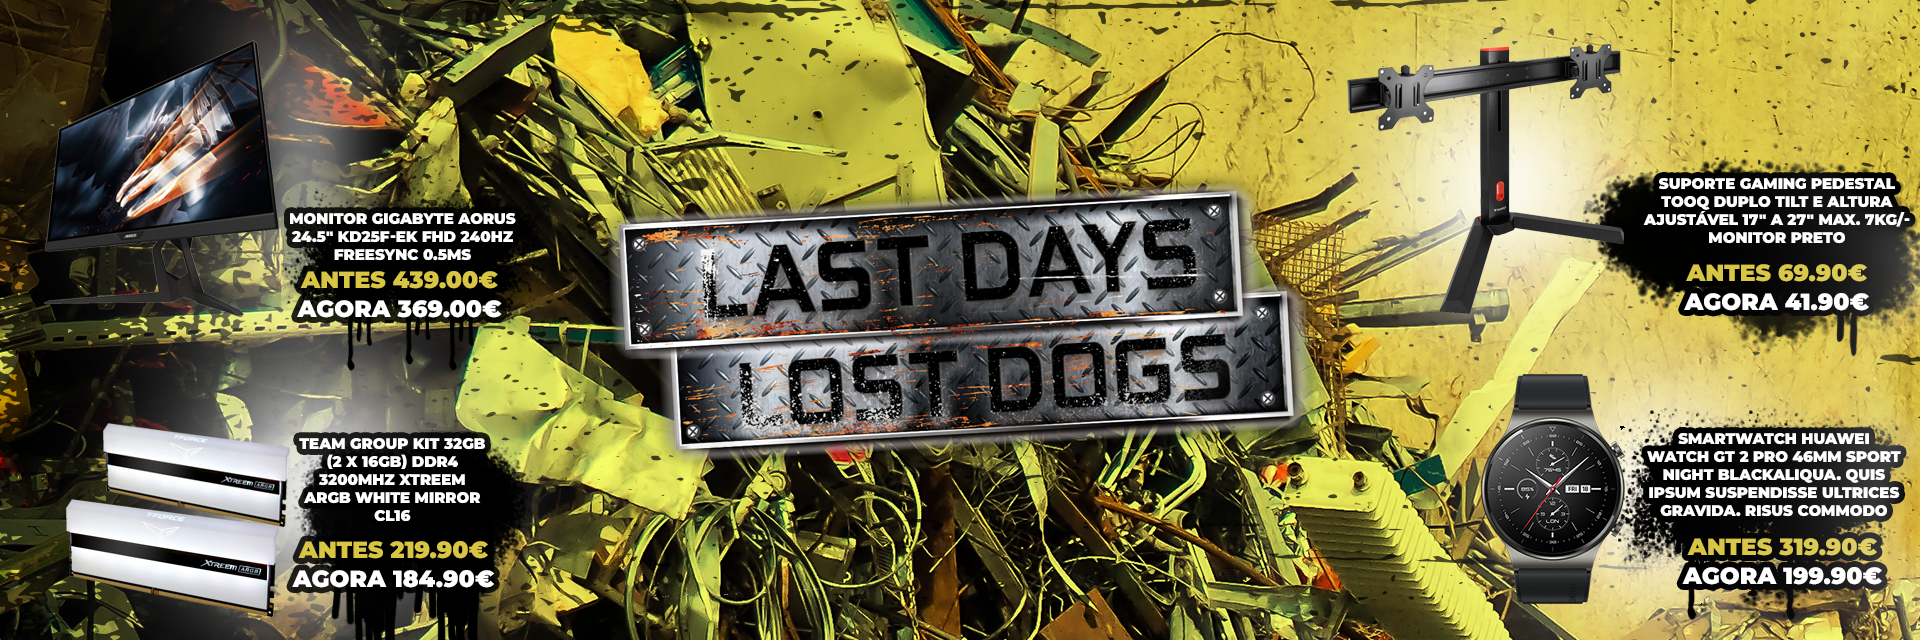 Last Days Lost Dogs